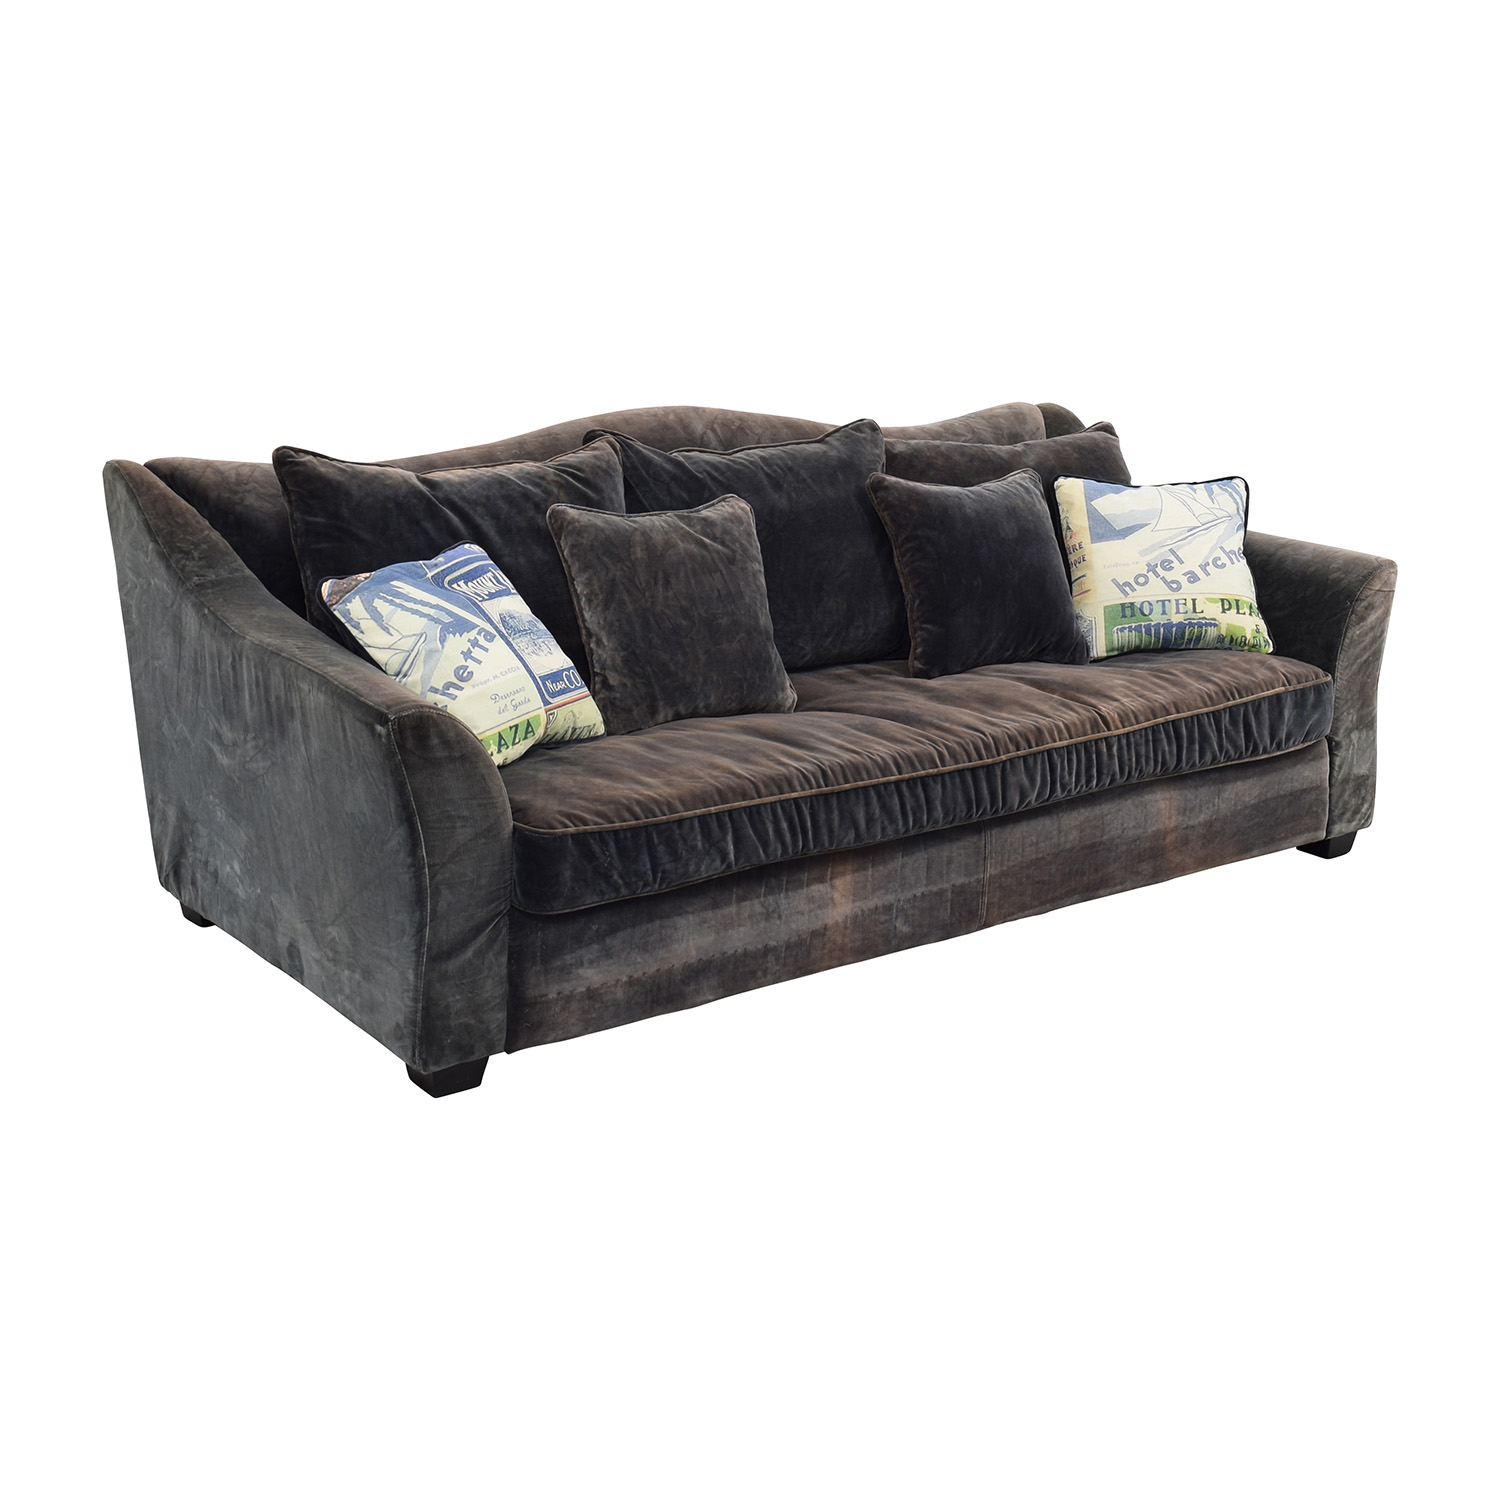 ABC Carpet and Home ABC Carpet & Home Timothy Oulton Grey Sofa dimensions